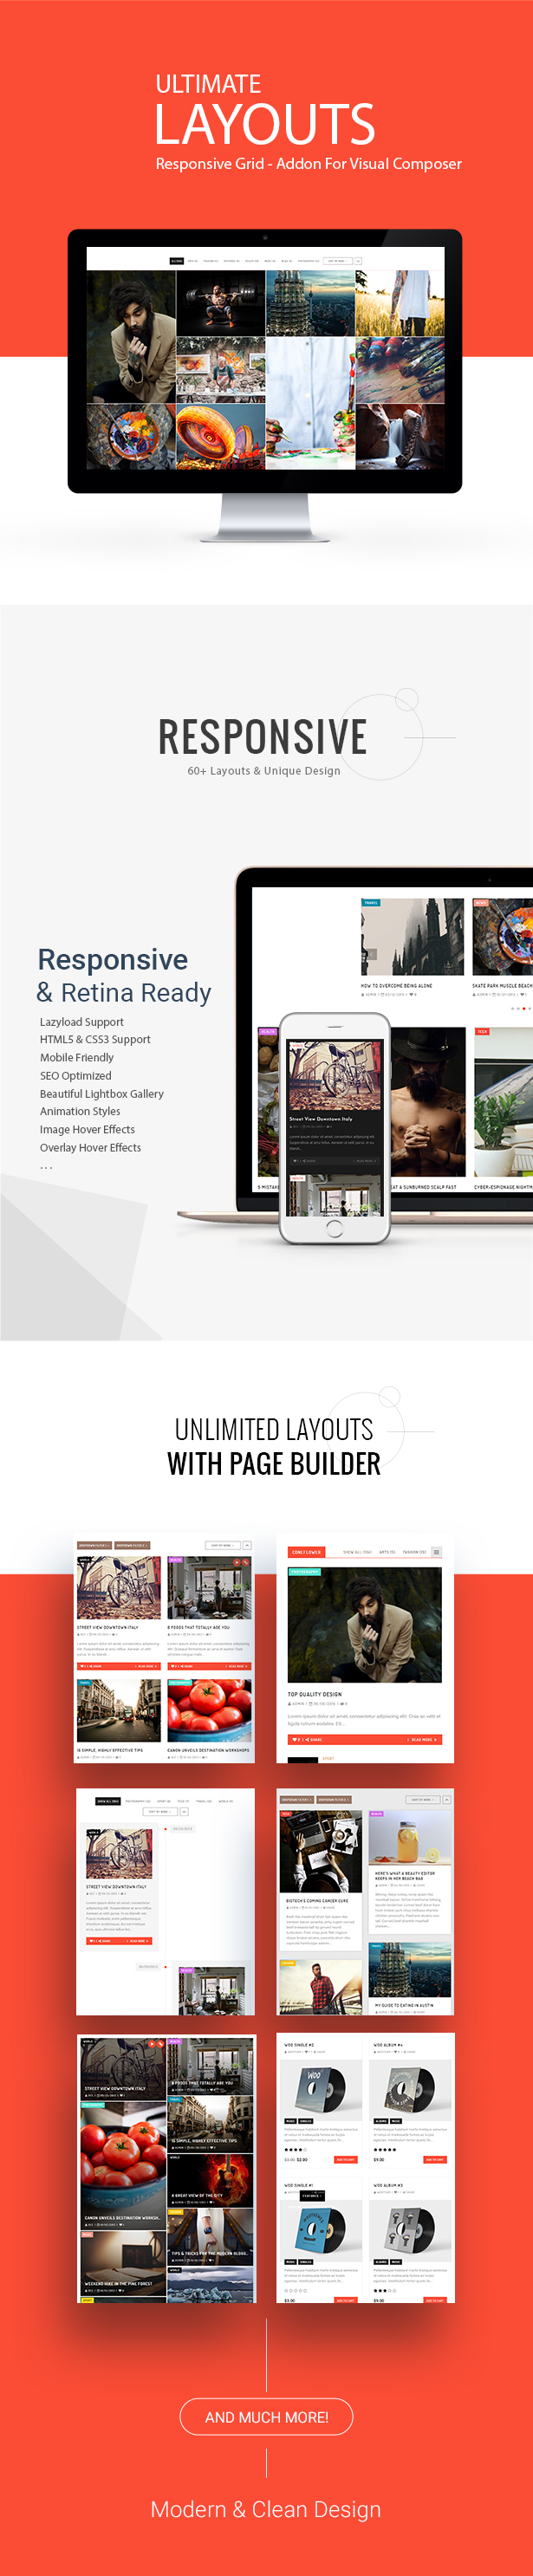 Ultimate Layouts - Responsive Grid & Youtube Video Gallery - Addon For WPBakery Page Builder - 2